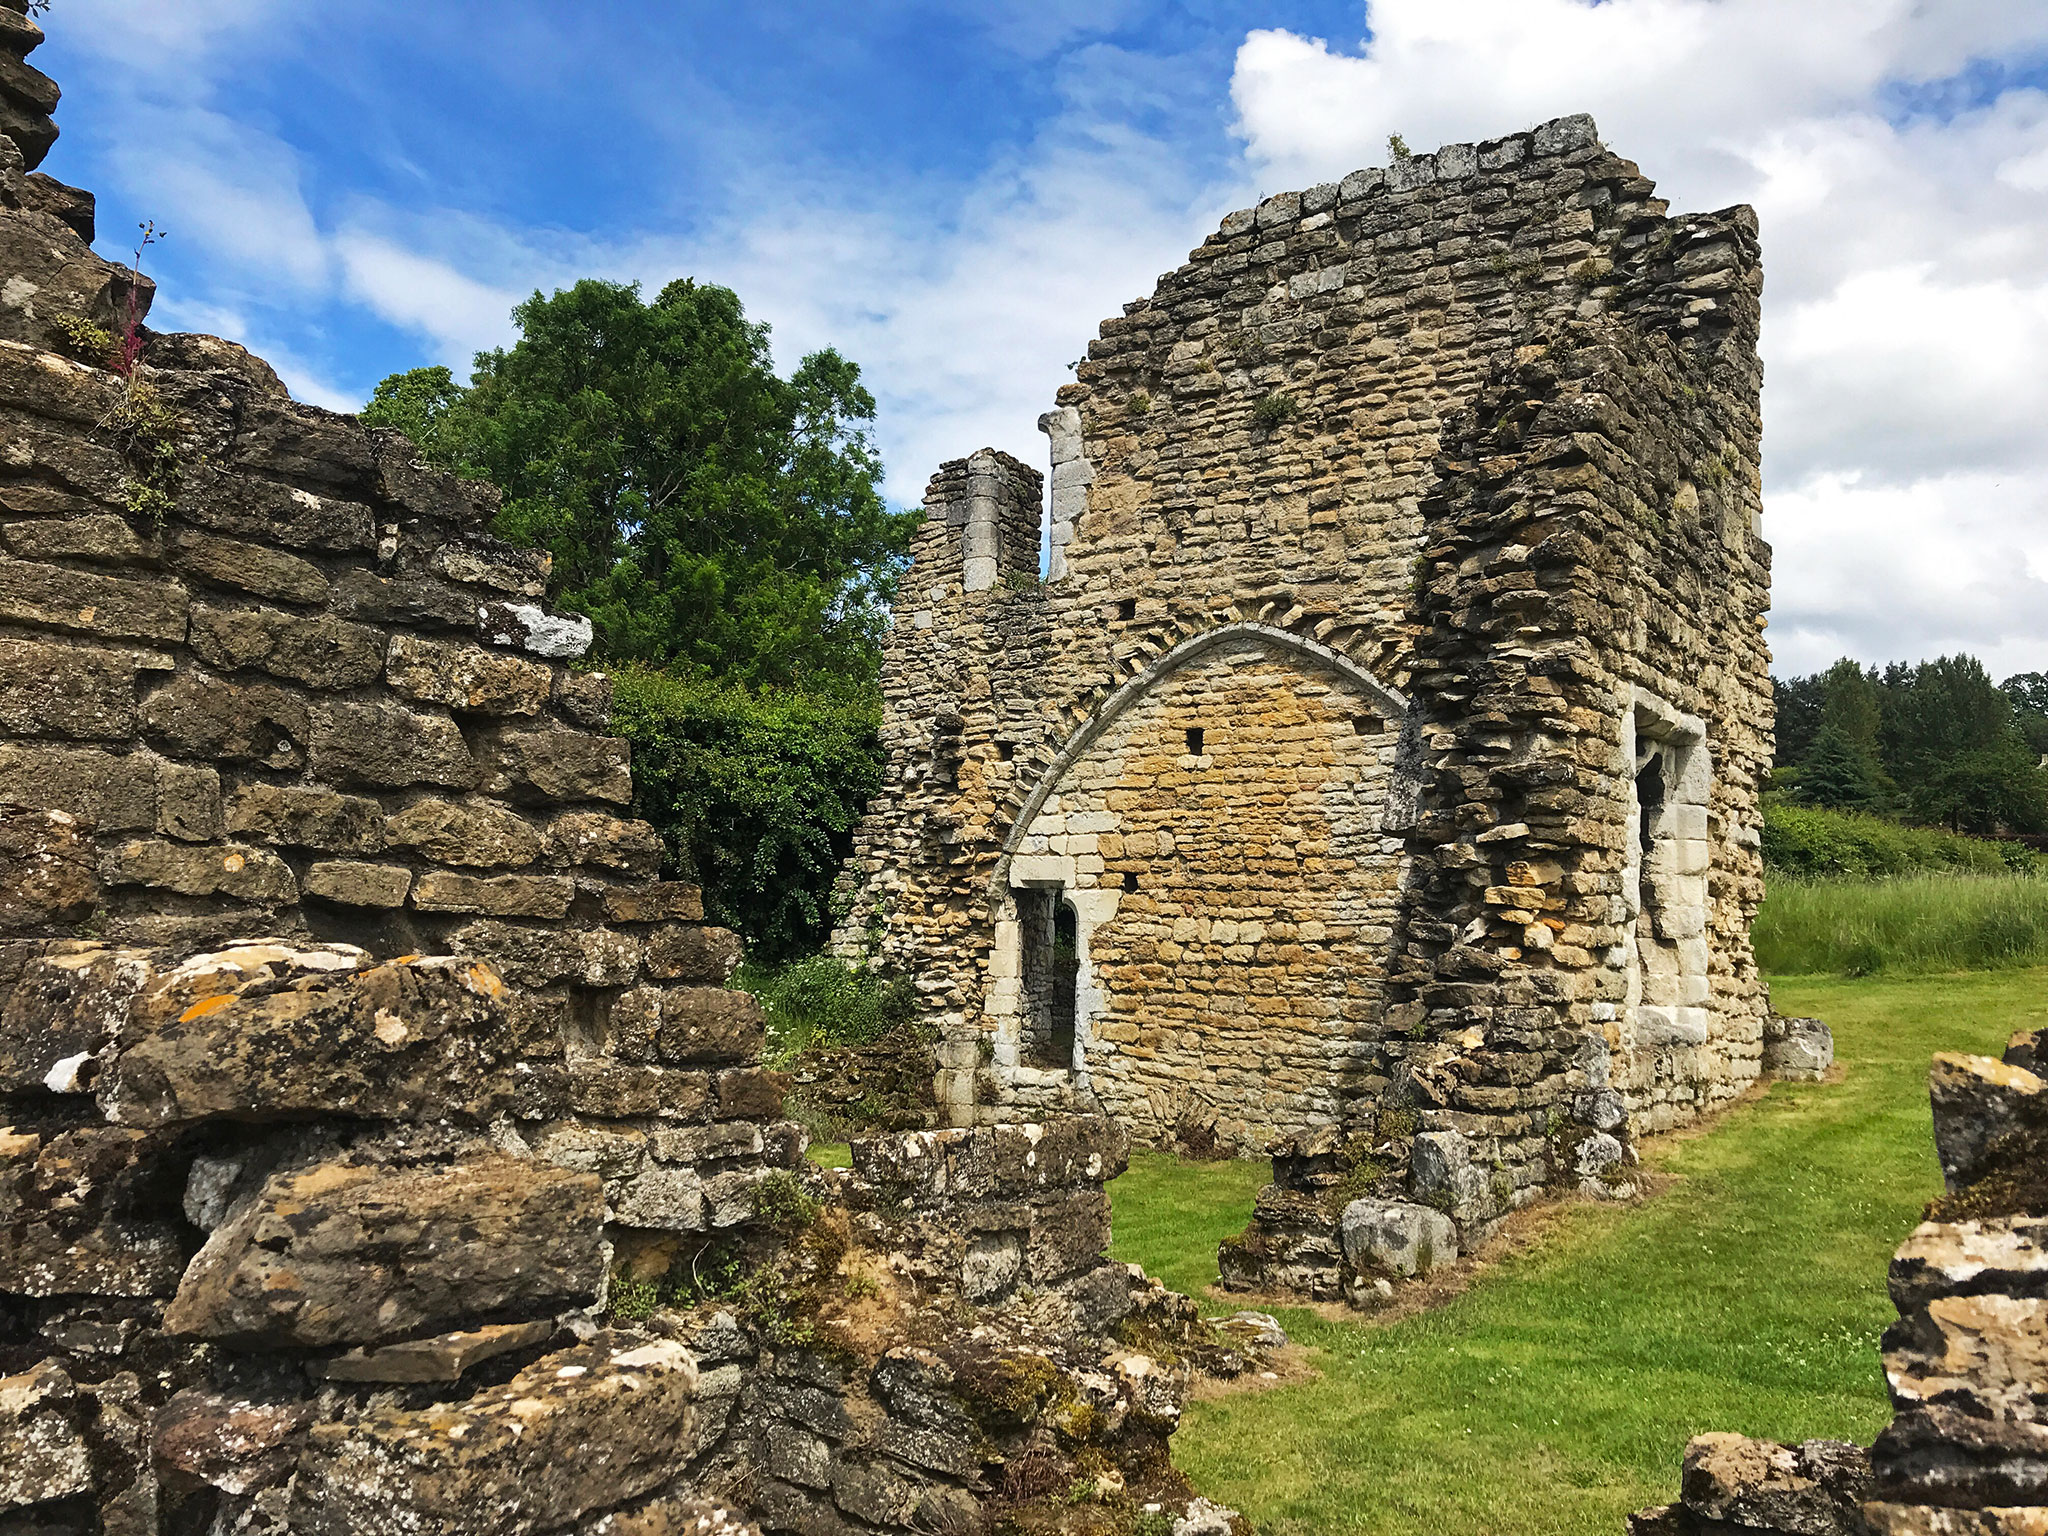 The Kirkham Priory ruins